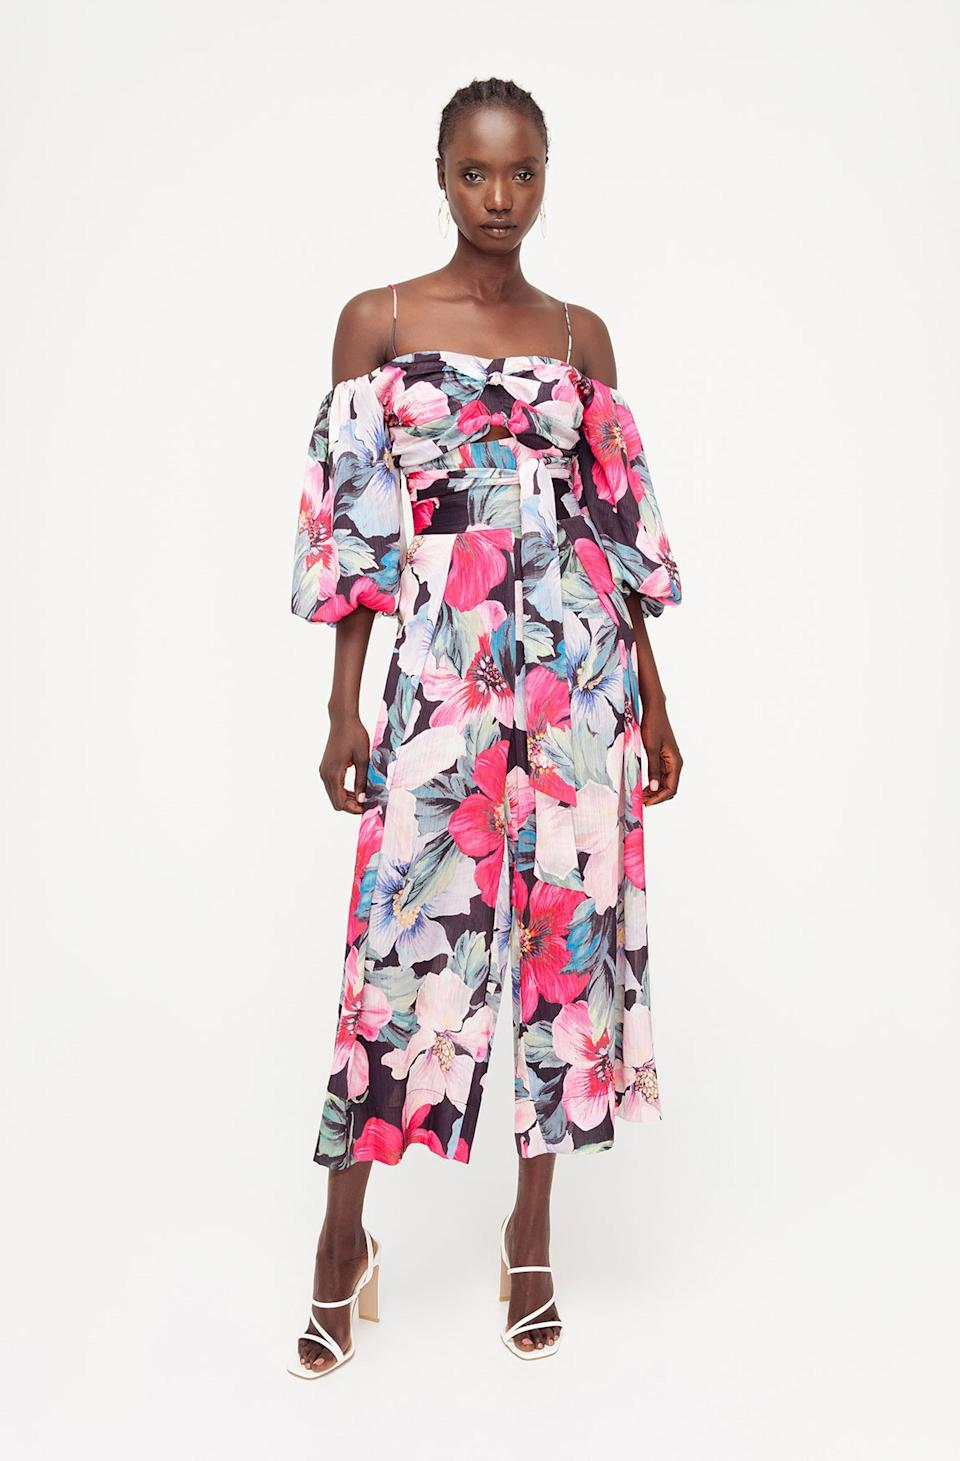 Full Bloom Pants, $79, was $129.95, and Full Bloom Top, $59, was $109.95